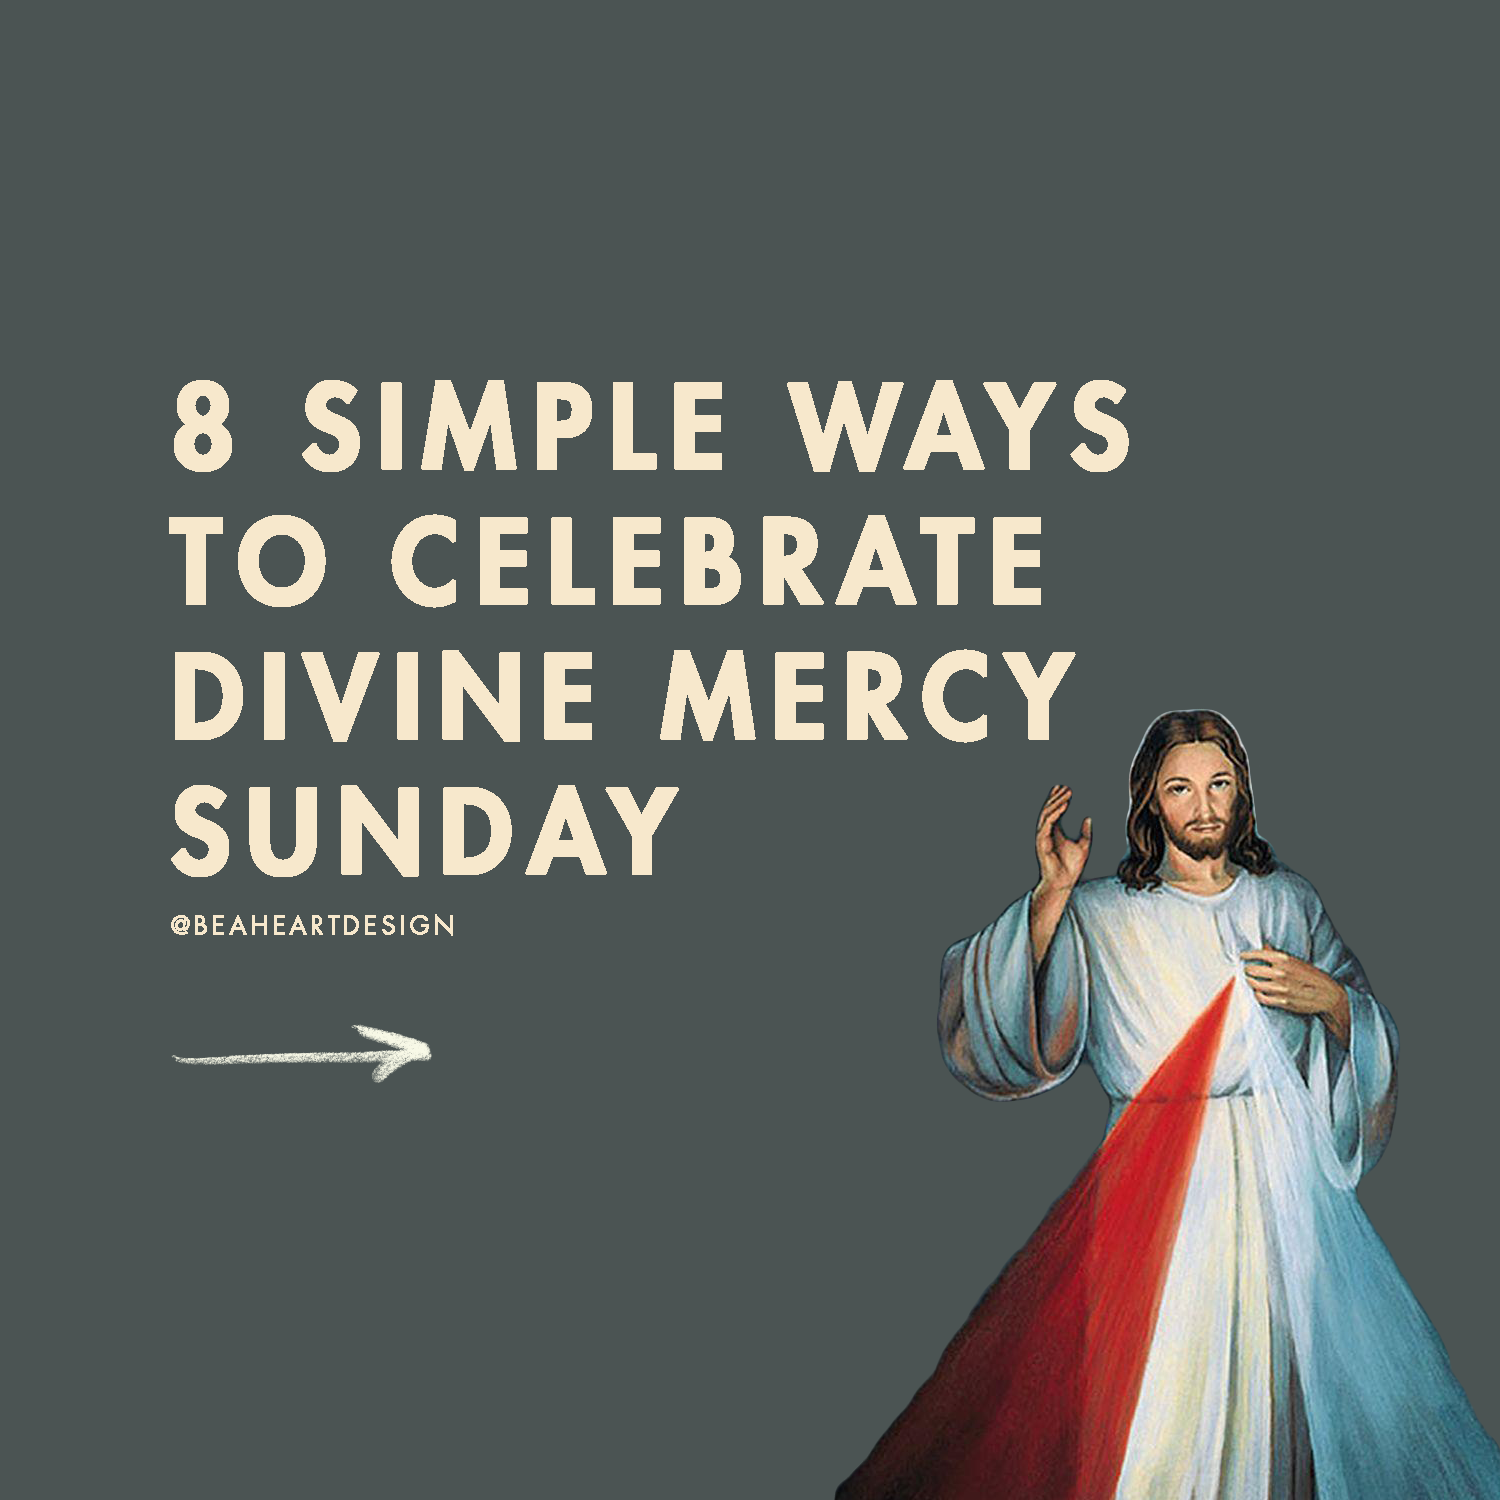 simple ways to celebrate divine mercy sunday